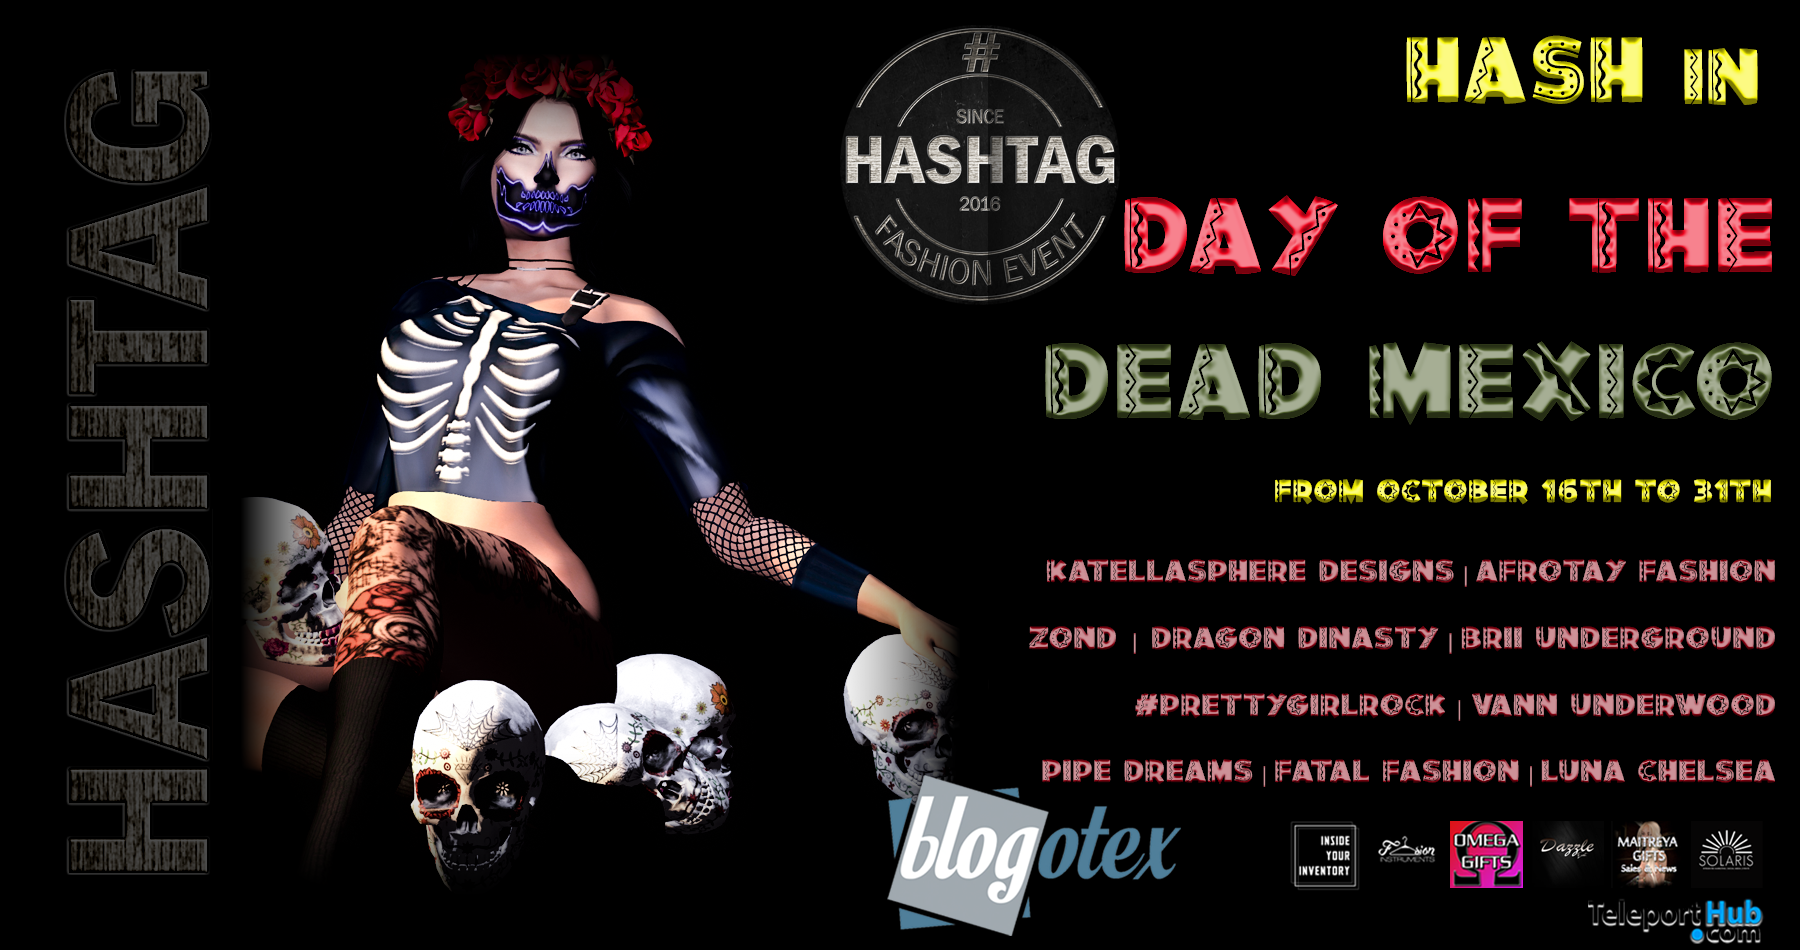 GALLERY HASH IN DAY OF THE DEAD MEXICO